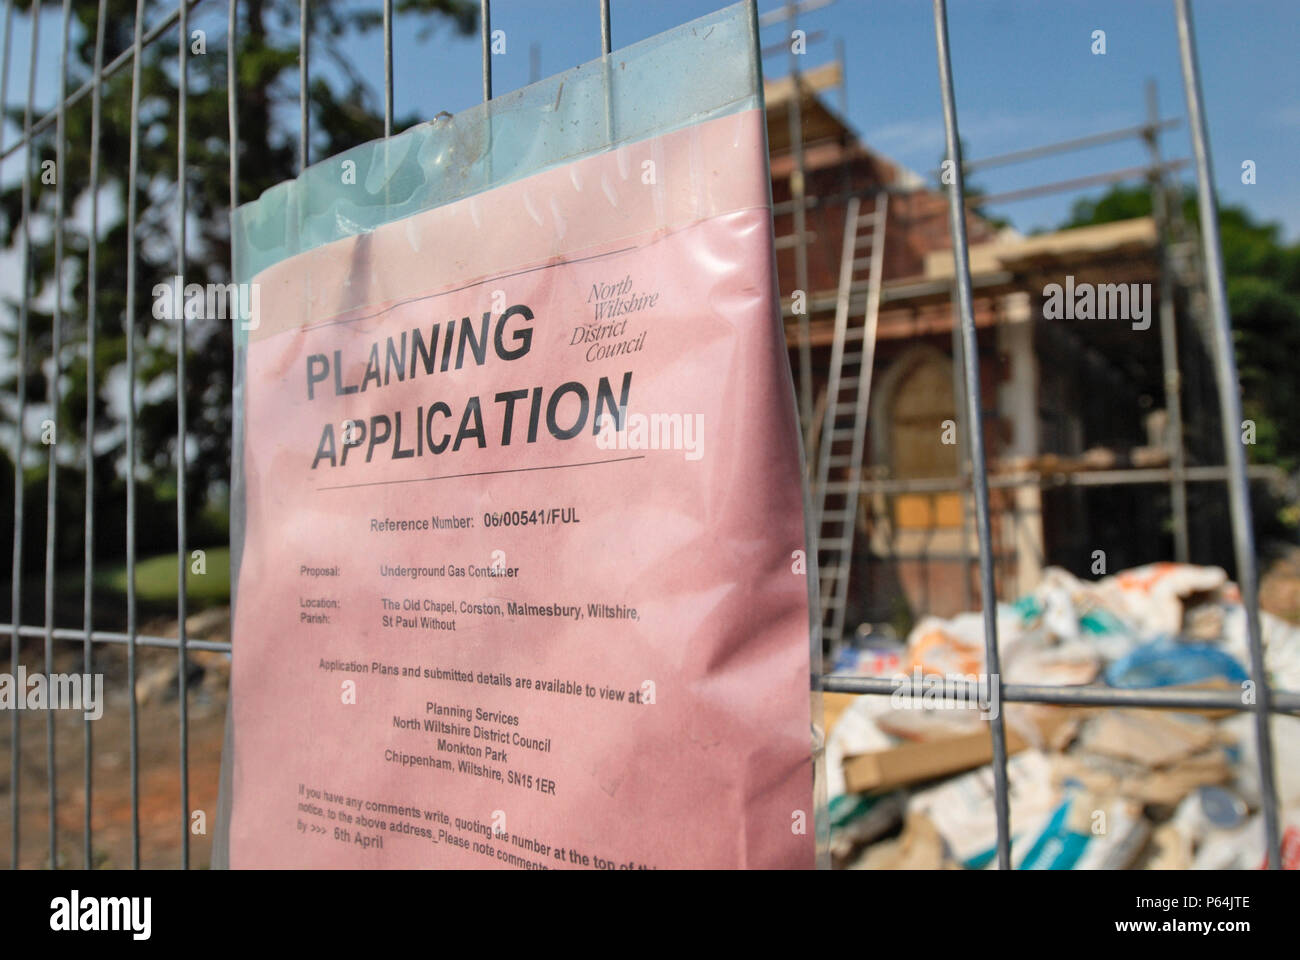 Planning Application sign for Chapel Conversion, UK - Stock Image